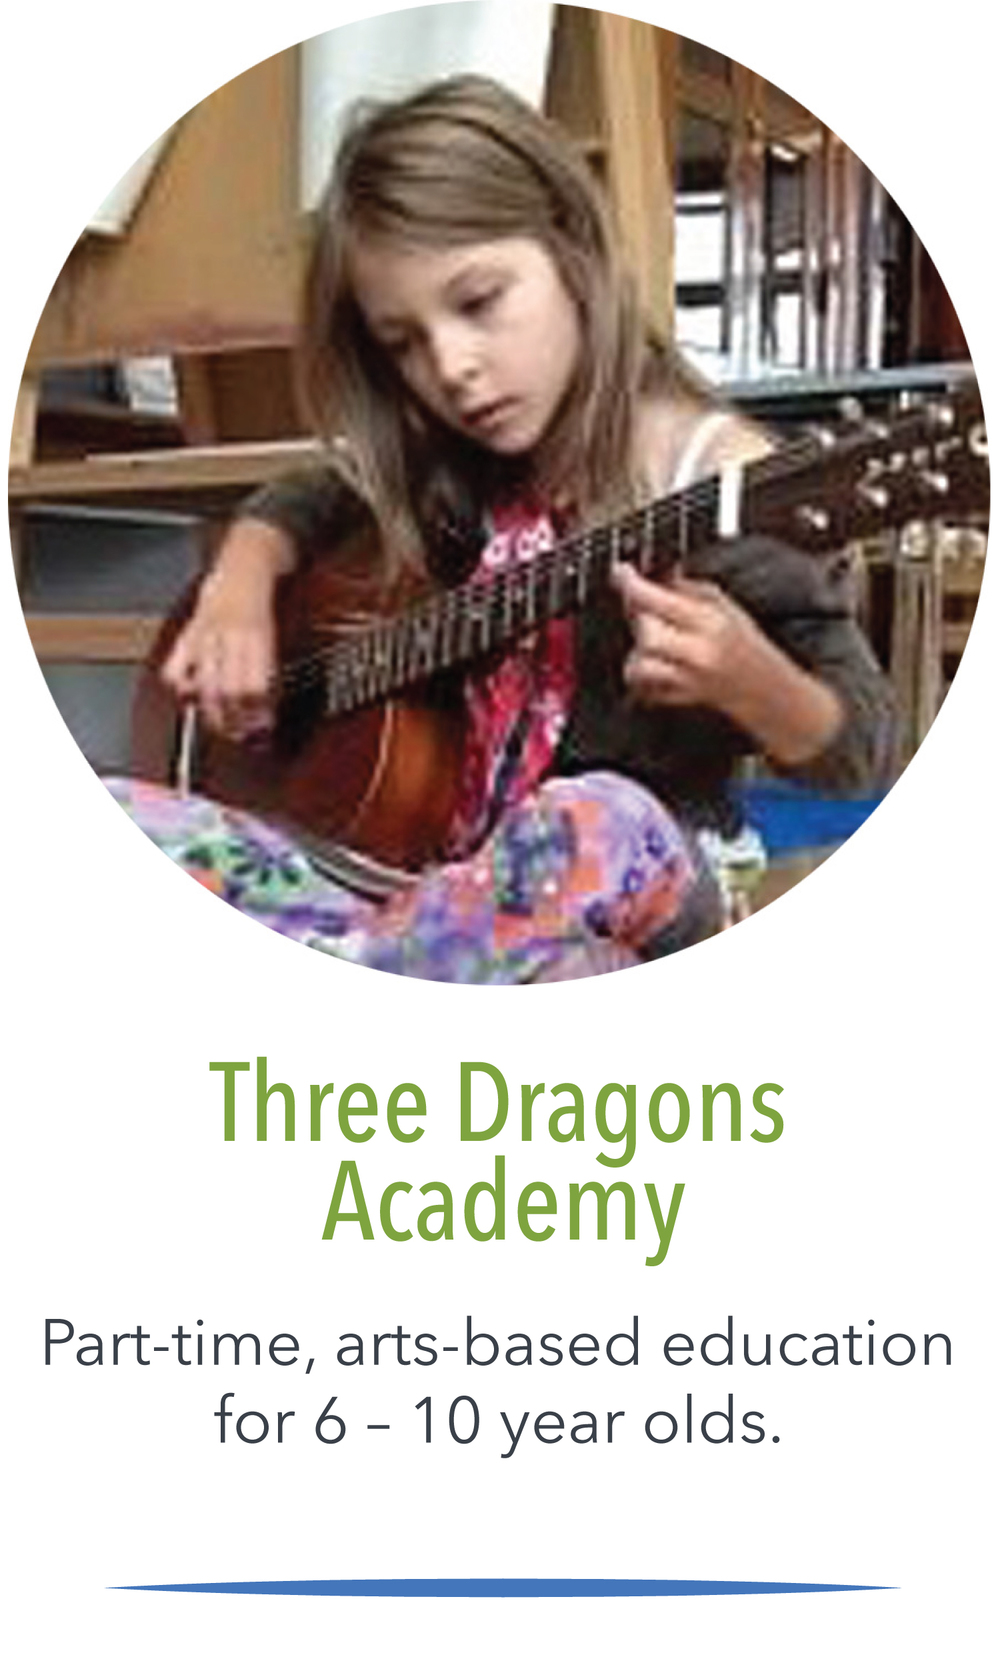 Click here to learn more about Three Dragons Academy.